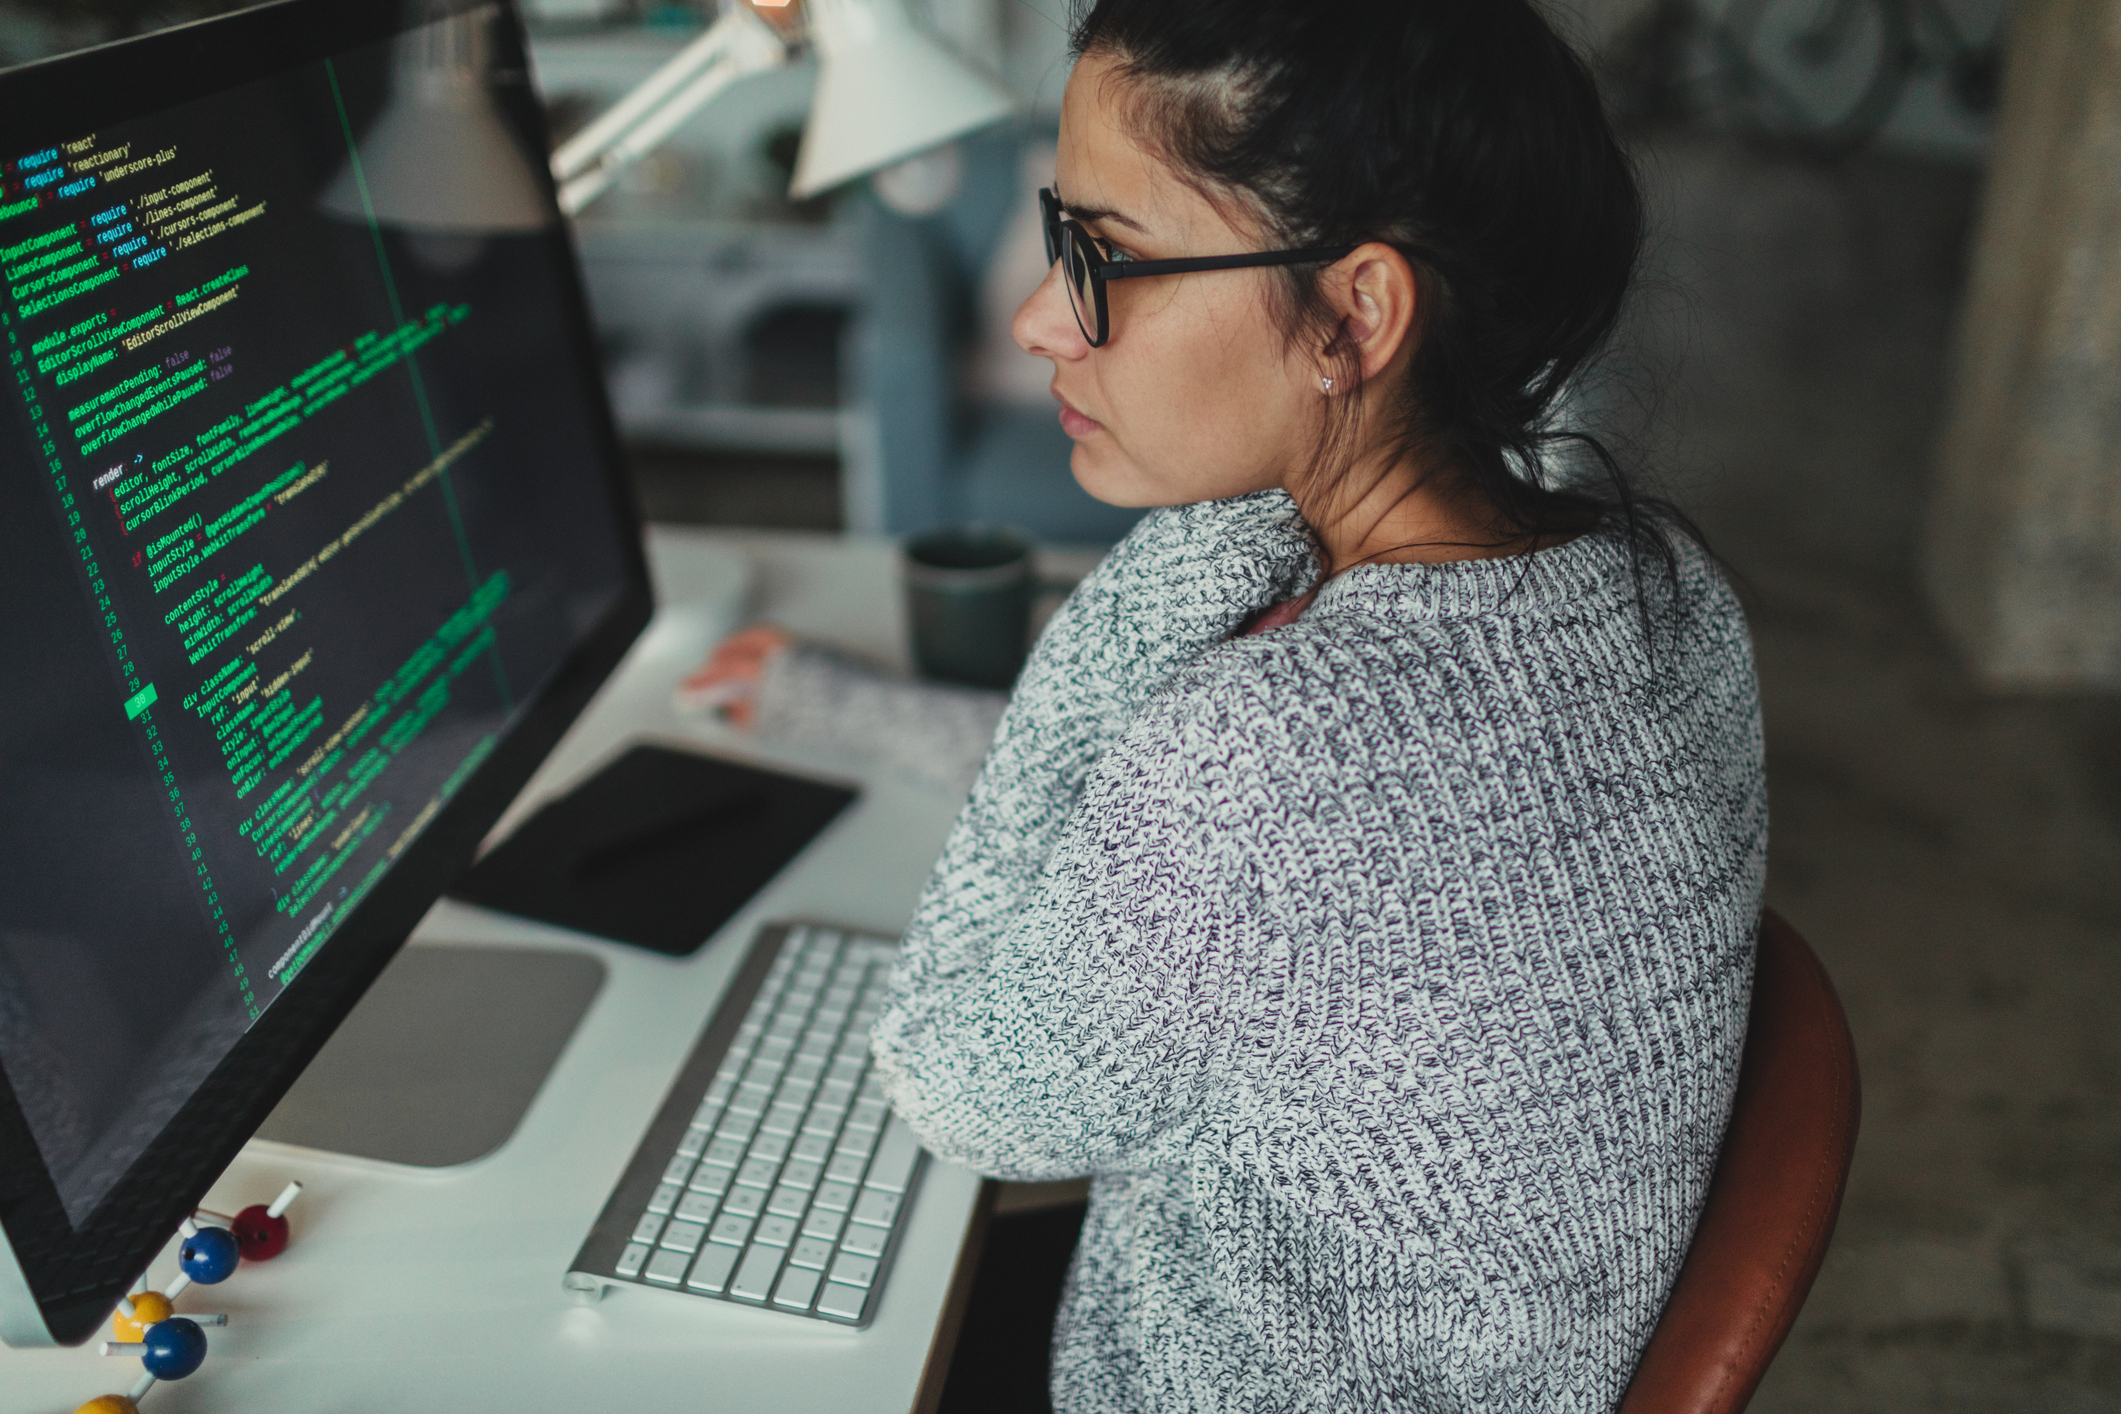 Coding 101: Why Women Need to Code